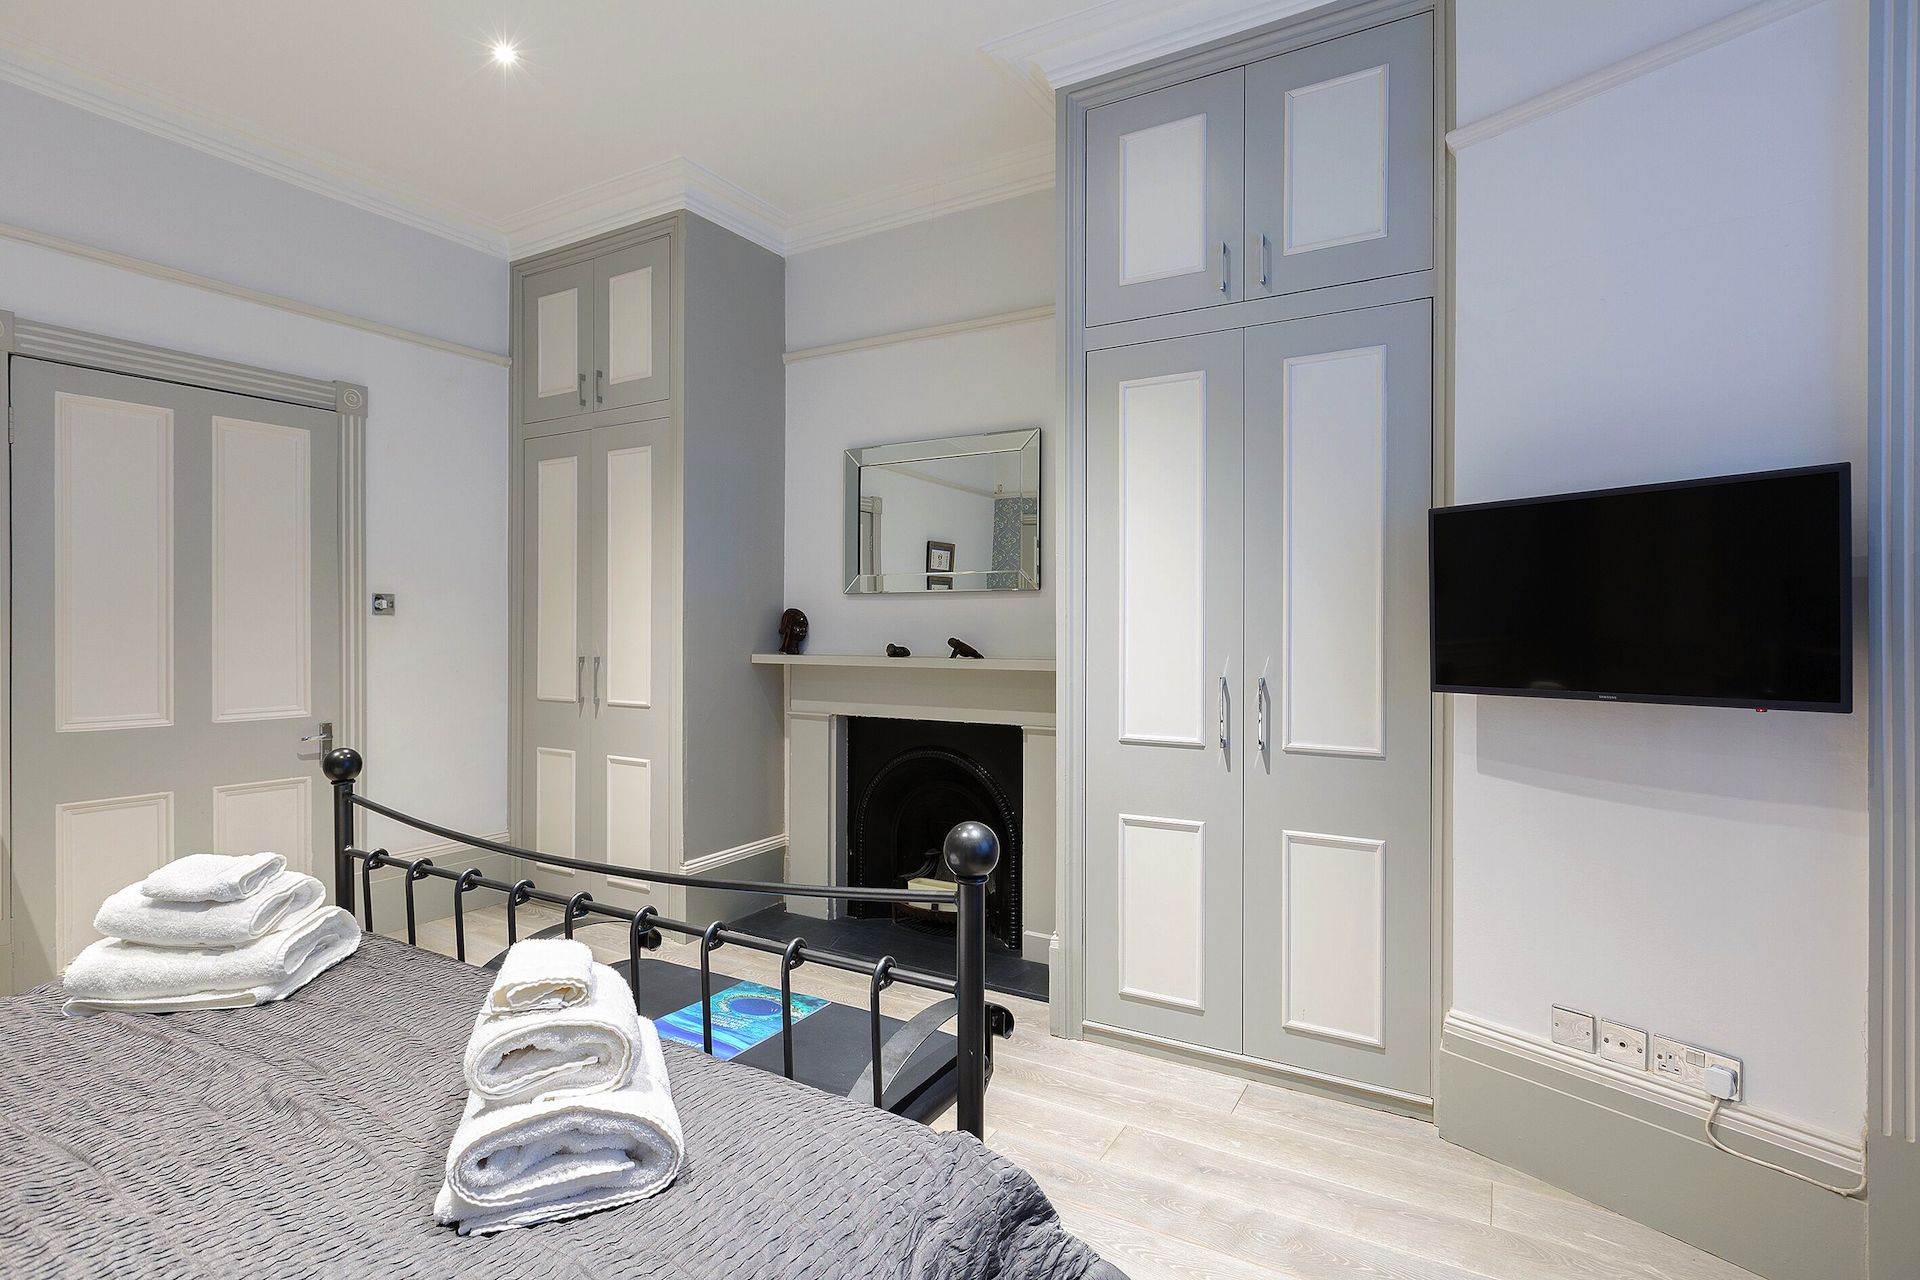 Plenty of storage in the Coleherne vacation rental offered by London Perfect